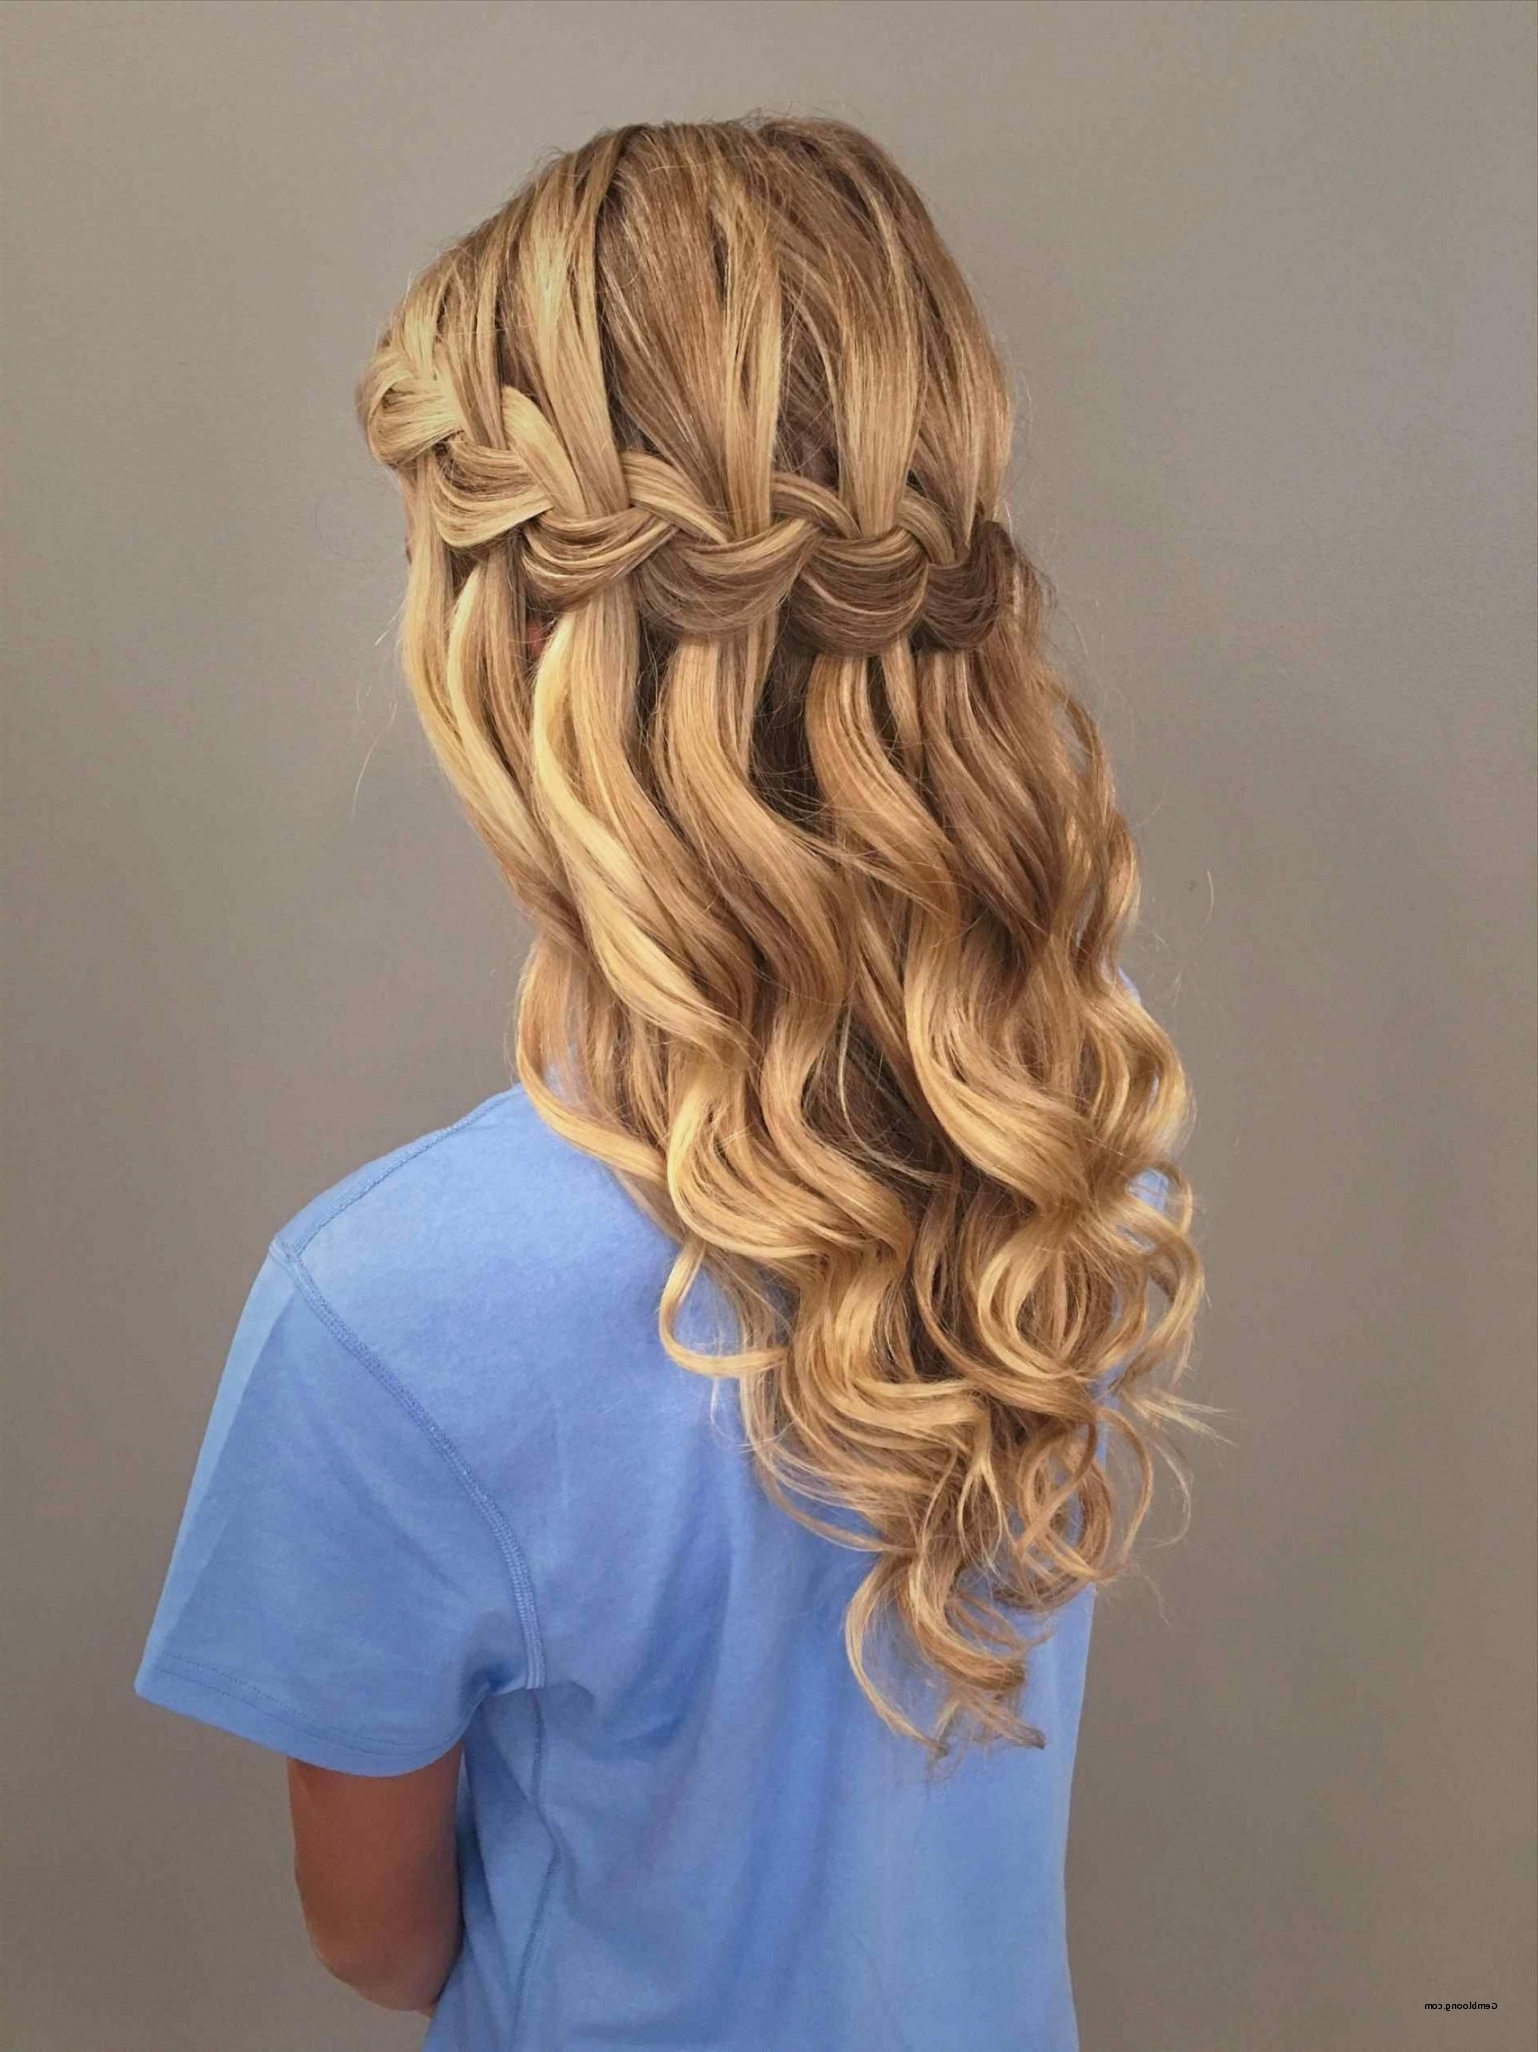 Wavy Hairstyles With Braid For Prom Fresh Curly Hairstyles Awesome Within Most Recent Curly Braid Hairstyles (View 15 of 15)